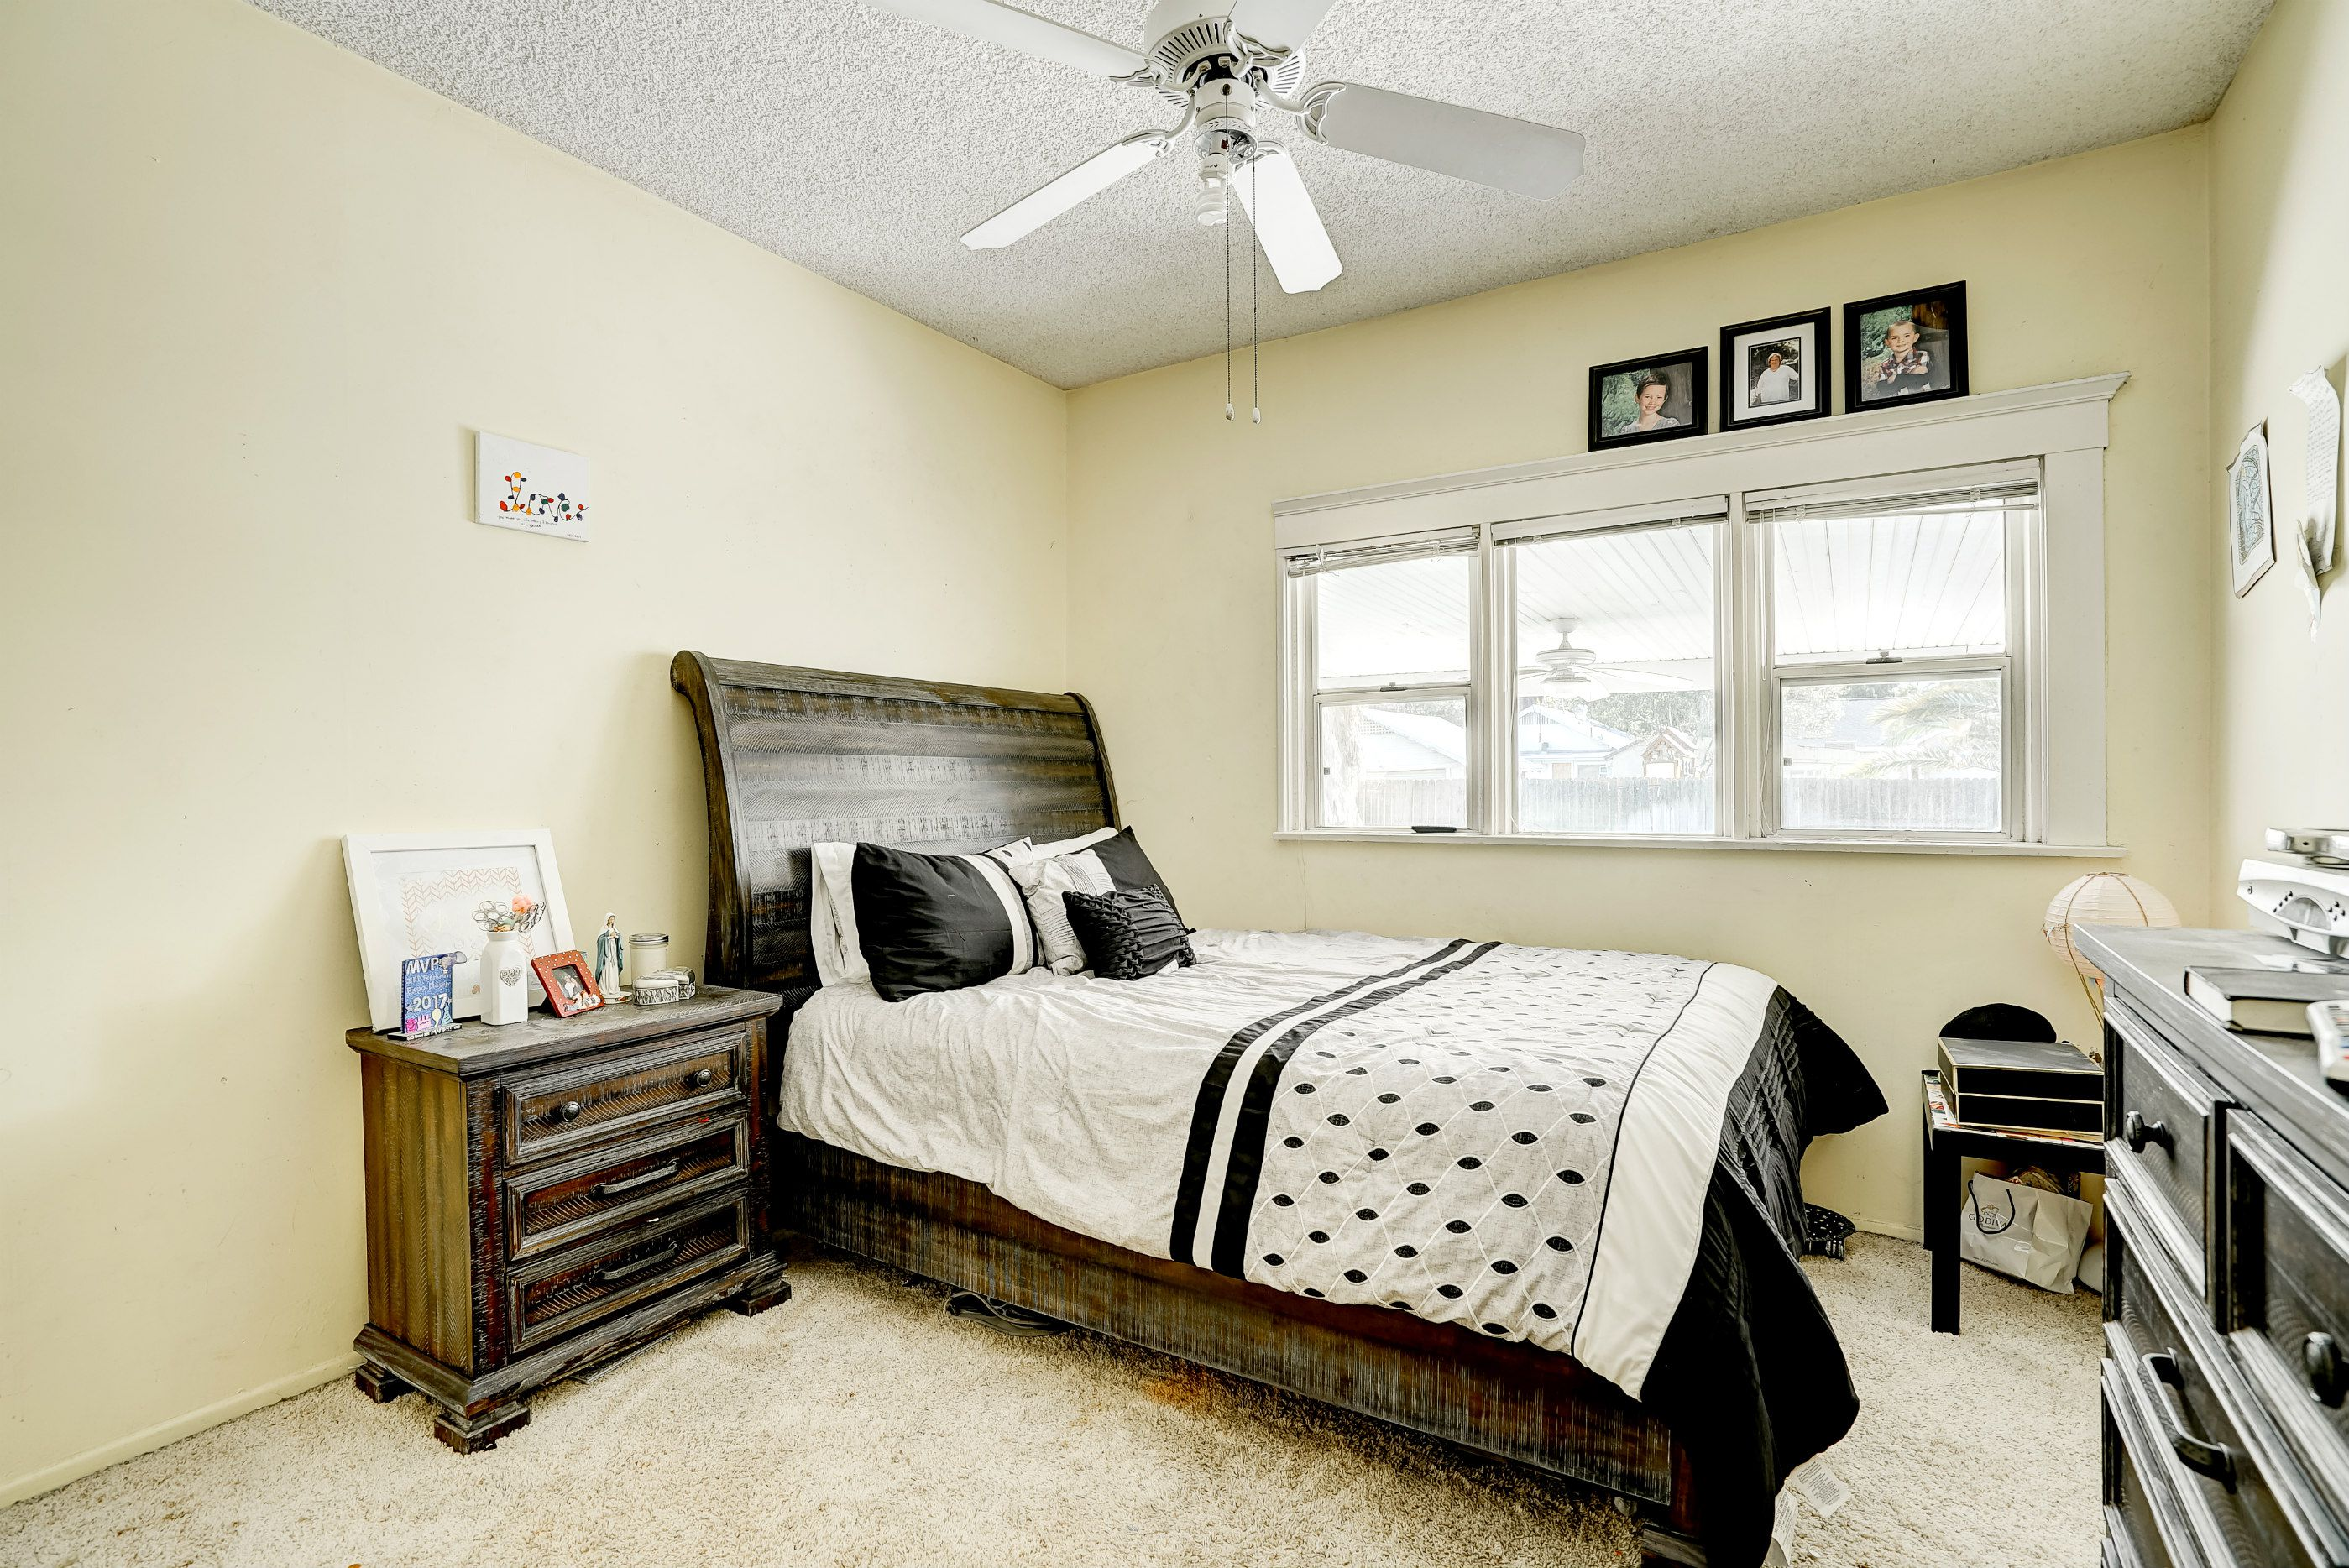 3rd of 4 bedrooms, this one with carpeting and ceiling fan, overlooking the back yard.